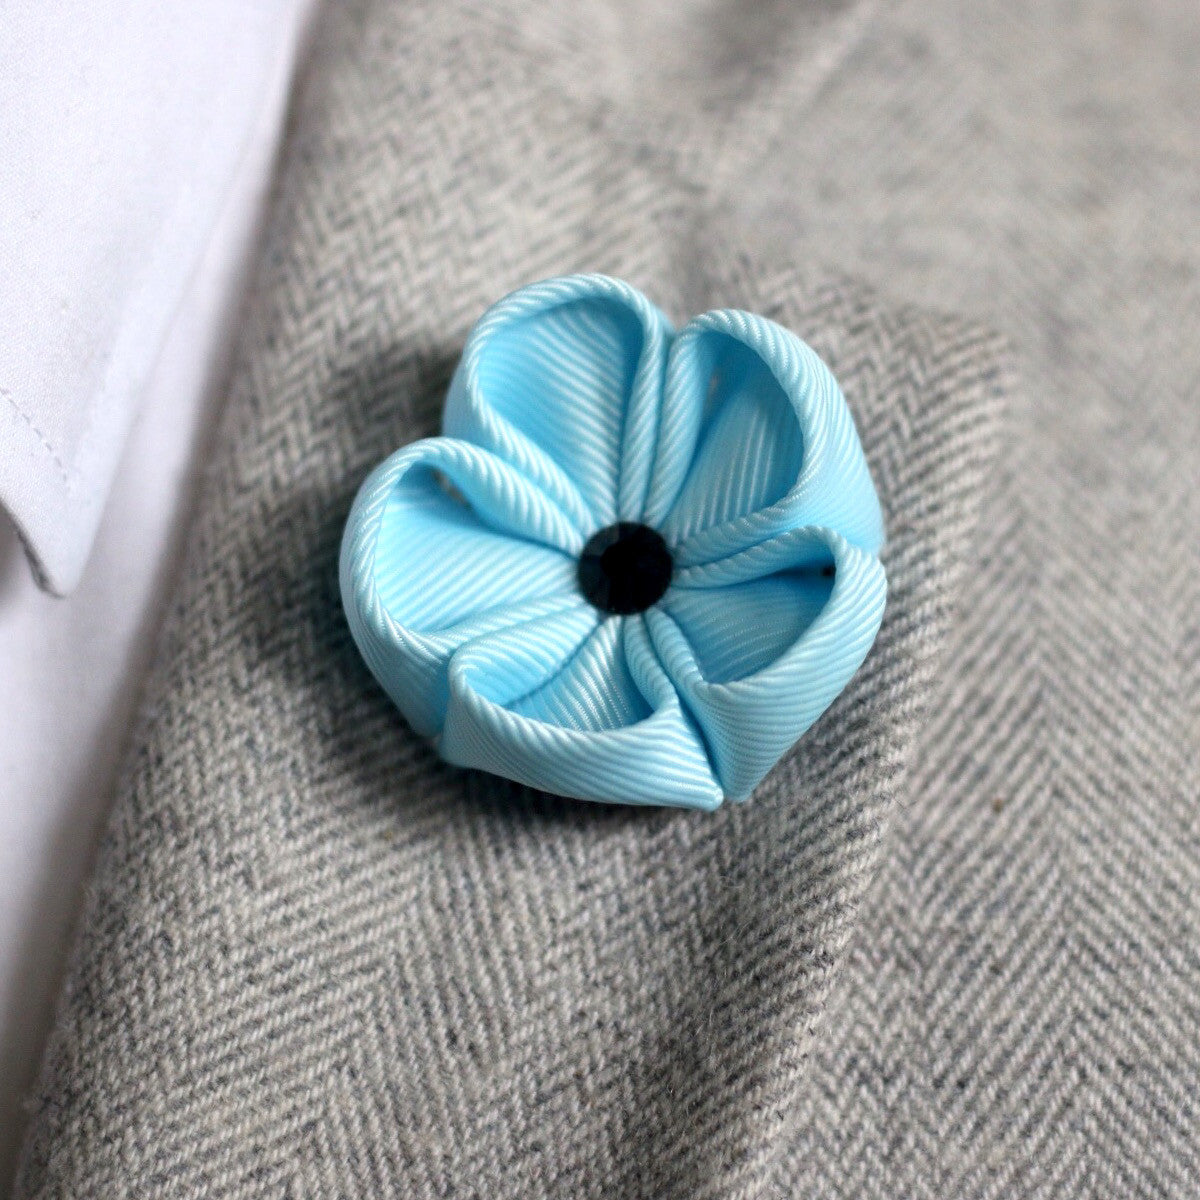 Mineral Blue Silk Ribbon Lapel Flower